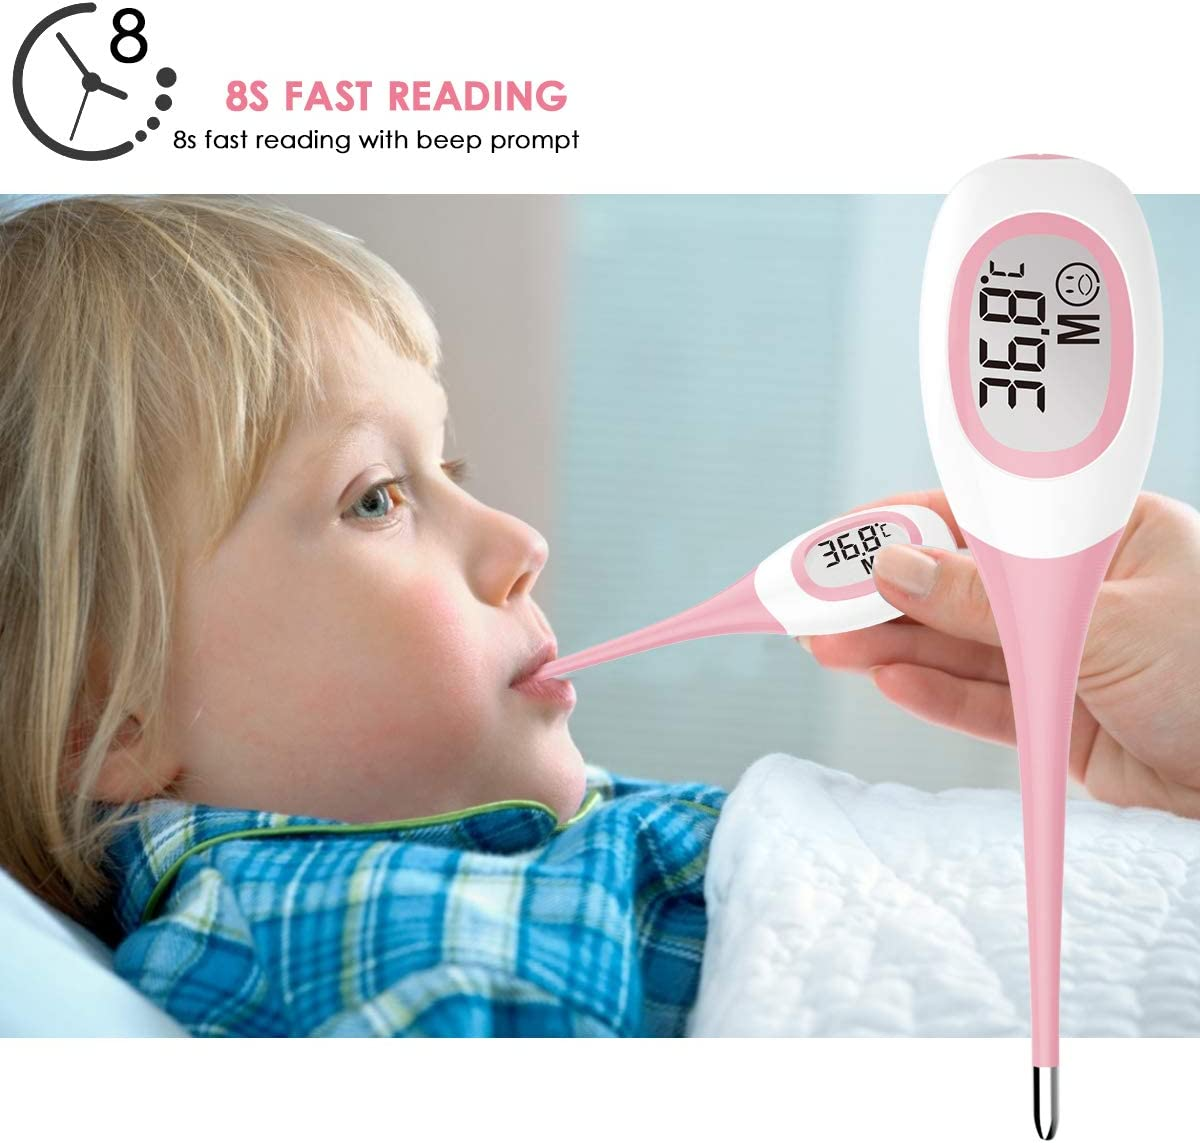 Gojiny Digital Body Thermometer Oral Temperature Thermometer 20s Underarm Fast Read Temperature Meter for Infants Babies Toddlers Kids